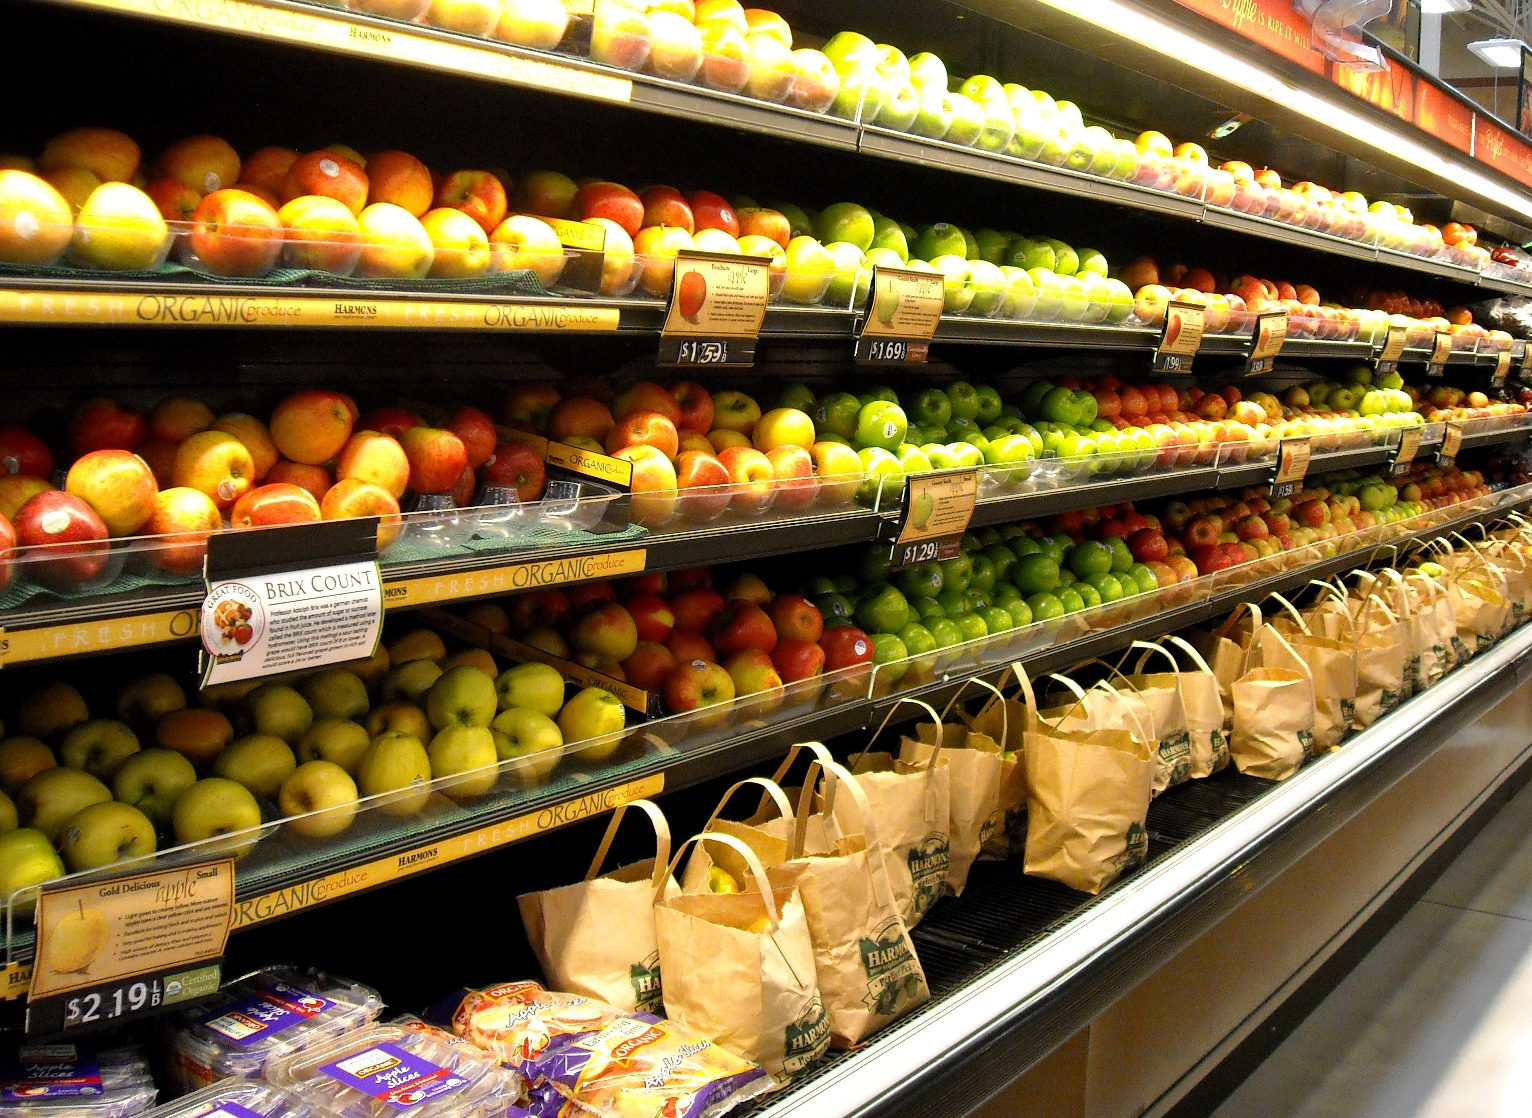 The economy is doing well, so why can't Canadian grocers hike prices?